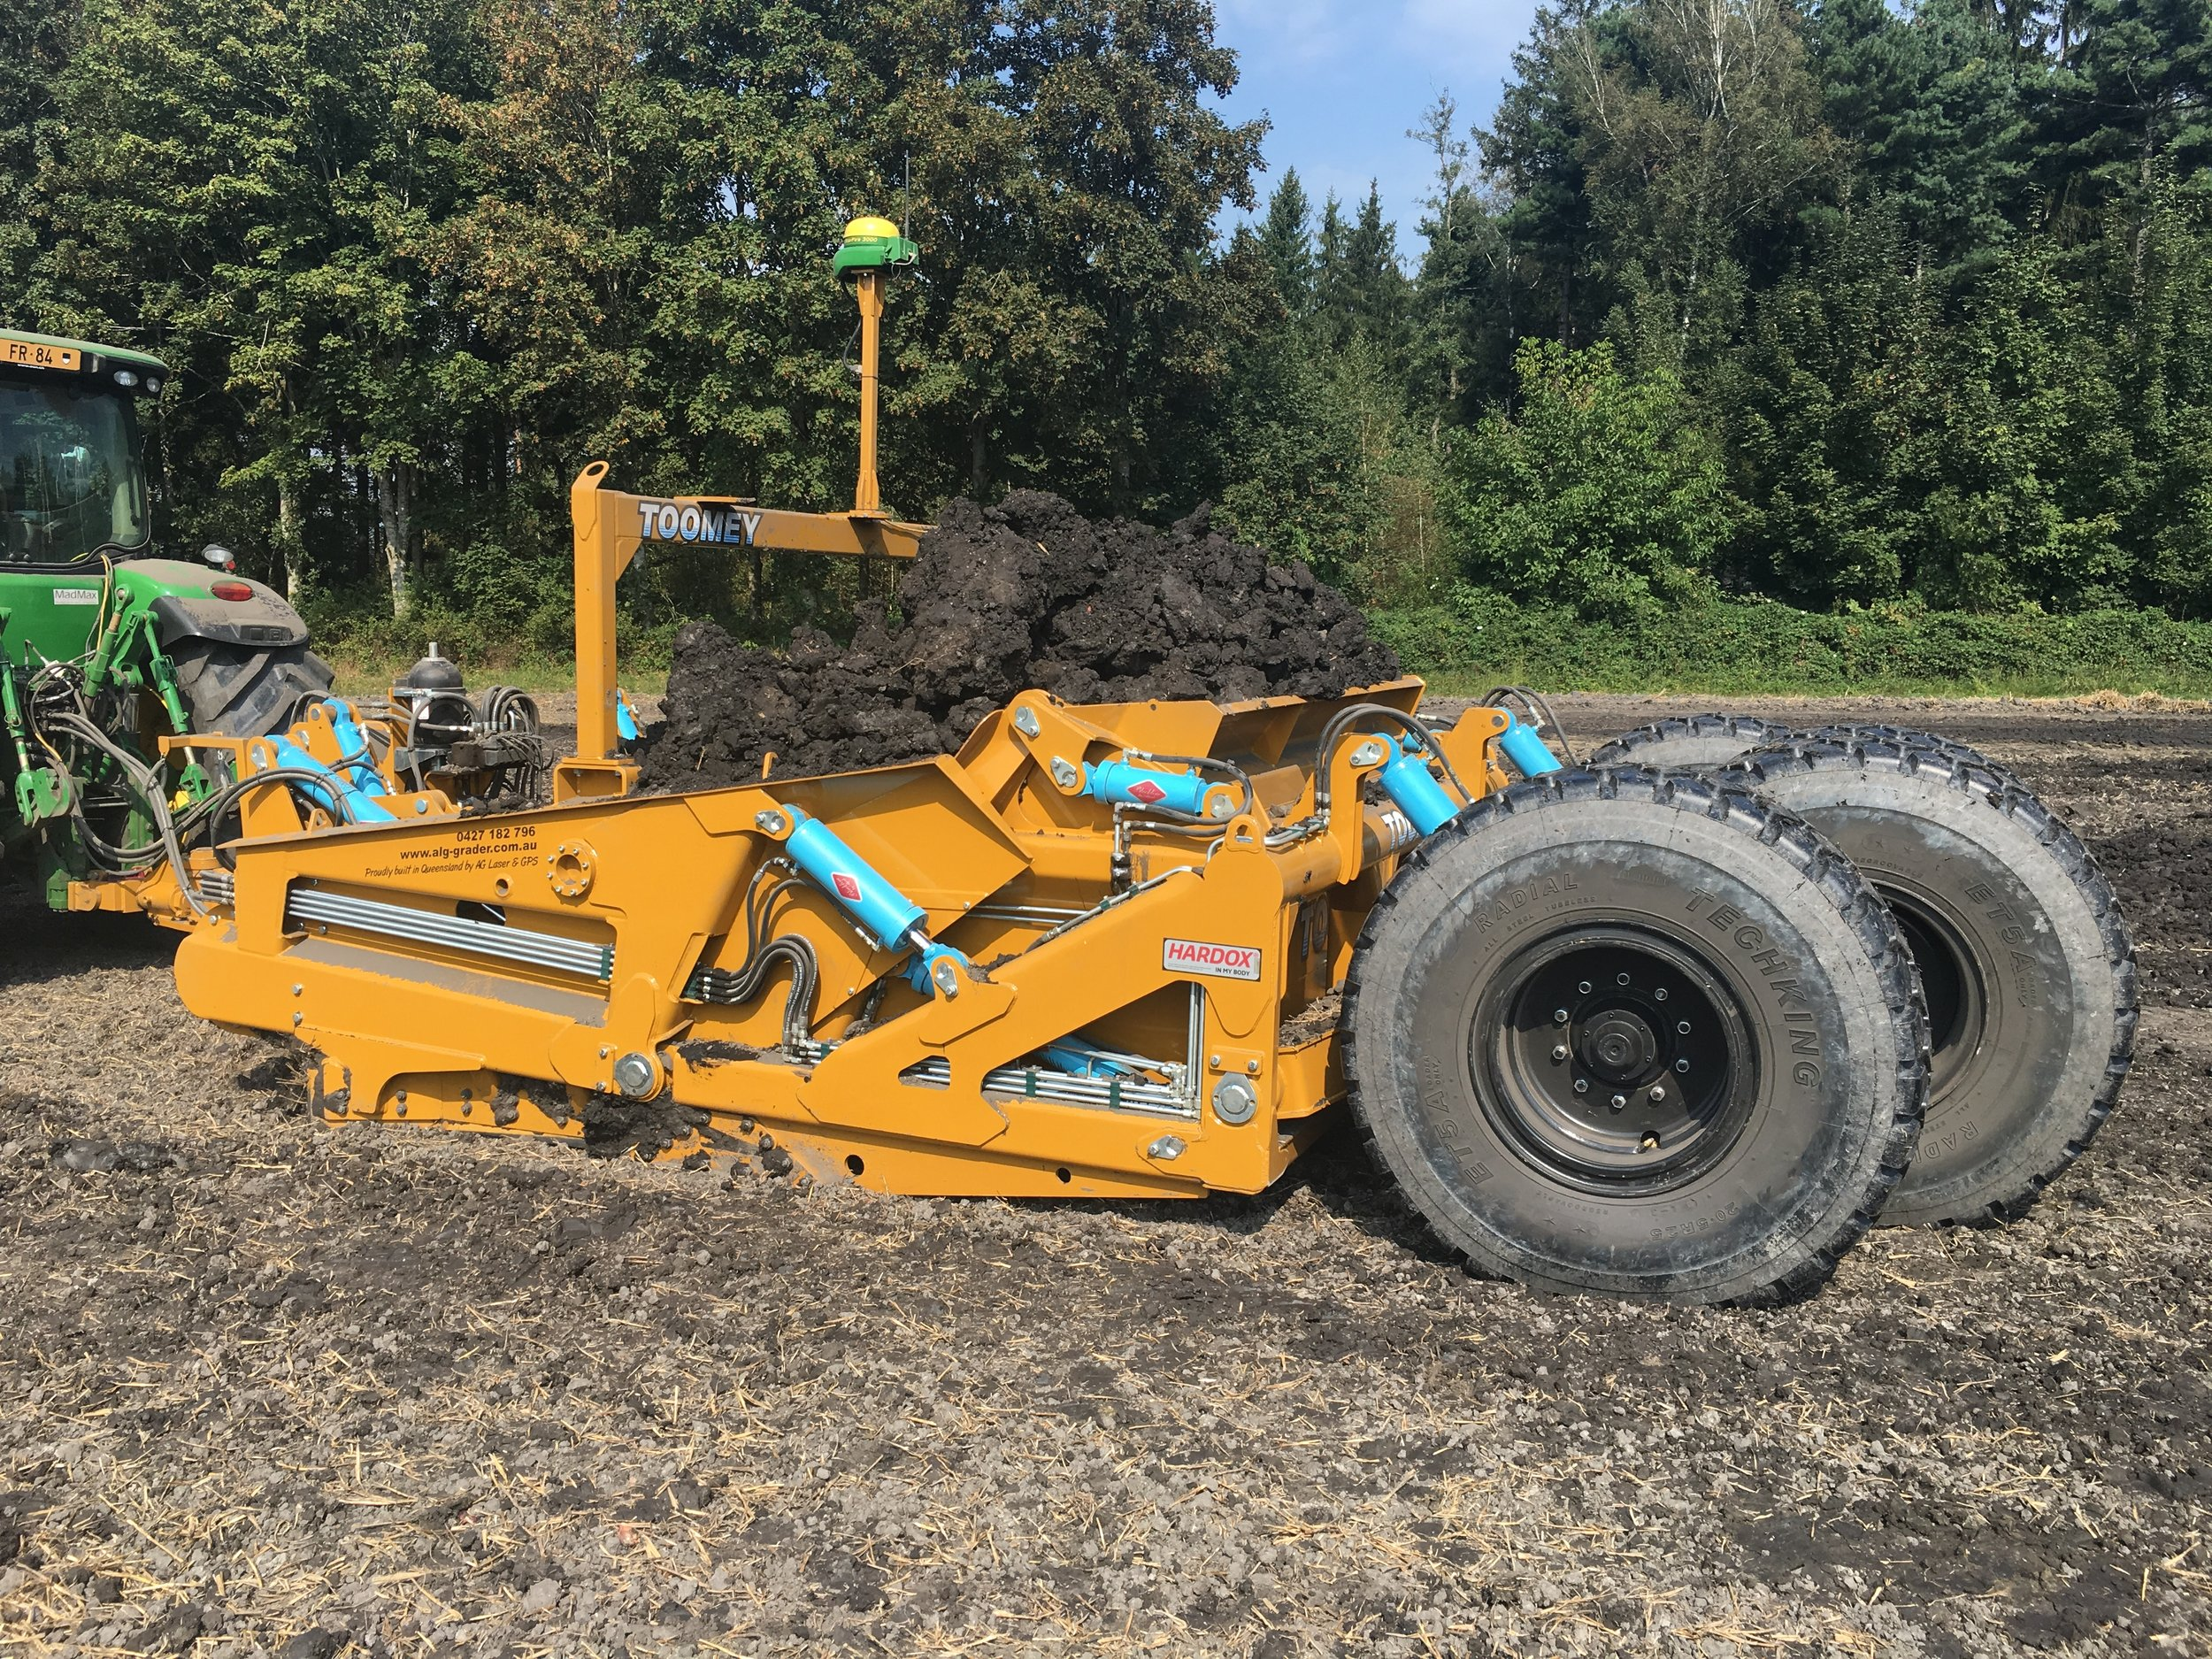 All Round Earthmoving - The Toomey is a true all-round earthmoving tool that can shift bulk dirt, cut and fill to grade, final trim and shape the surface.The Toomey has many operational functions that allow it to perform all these operations with equal ease, without hassle and all conditions.